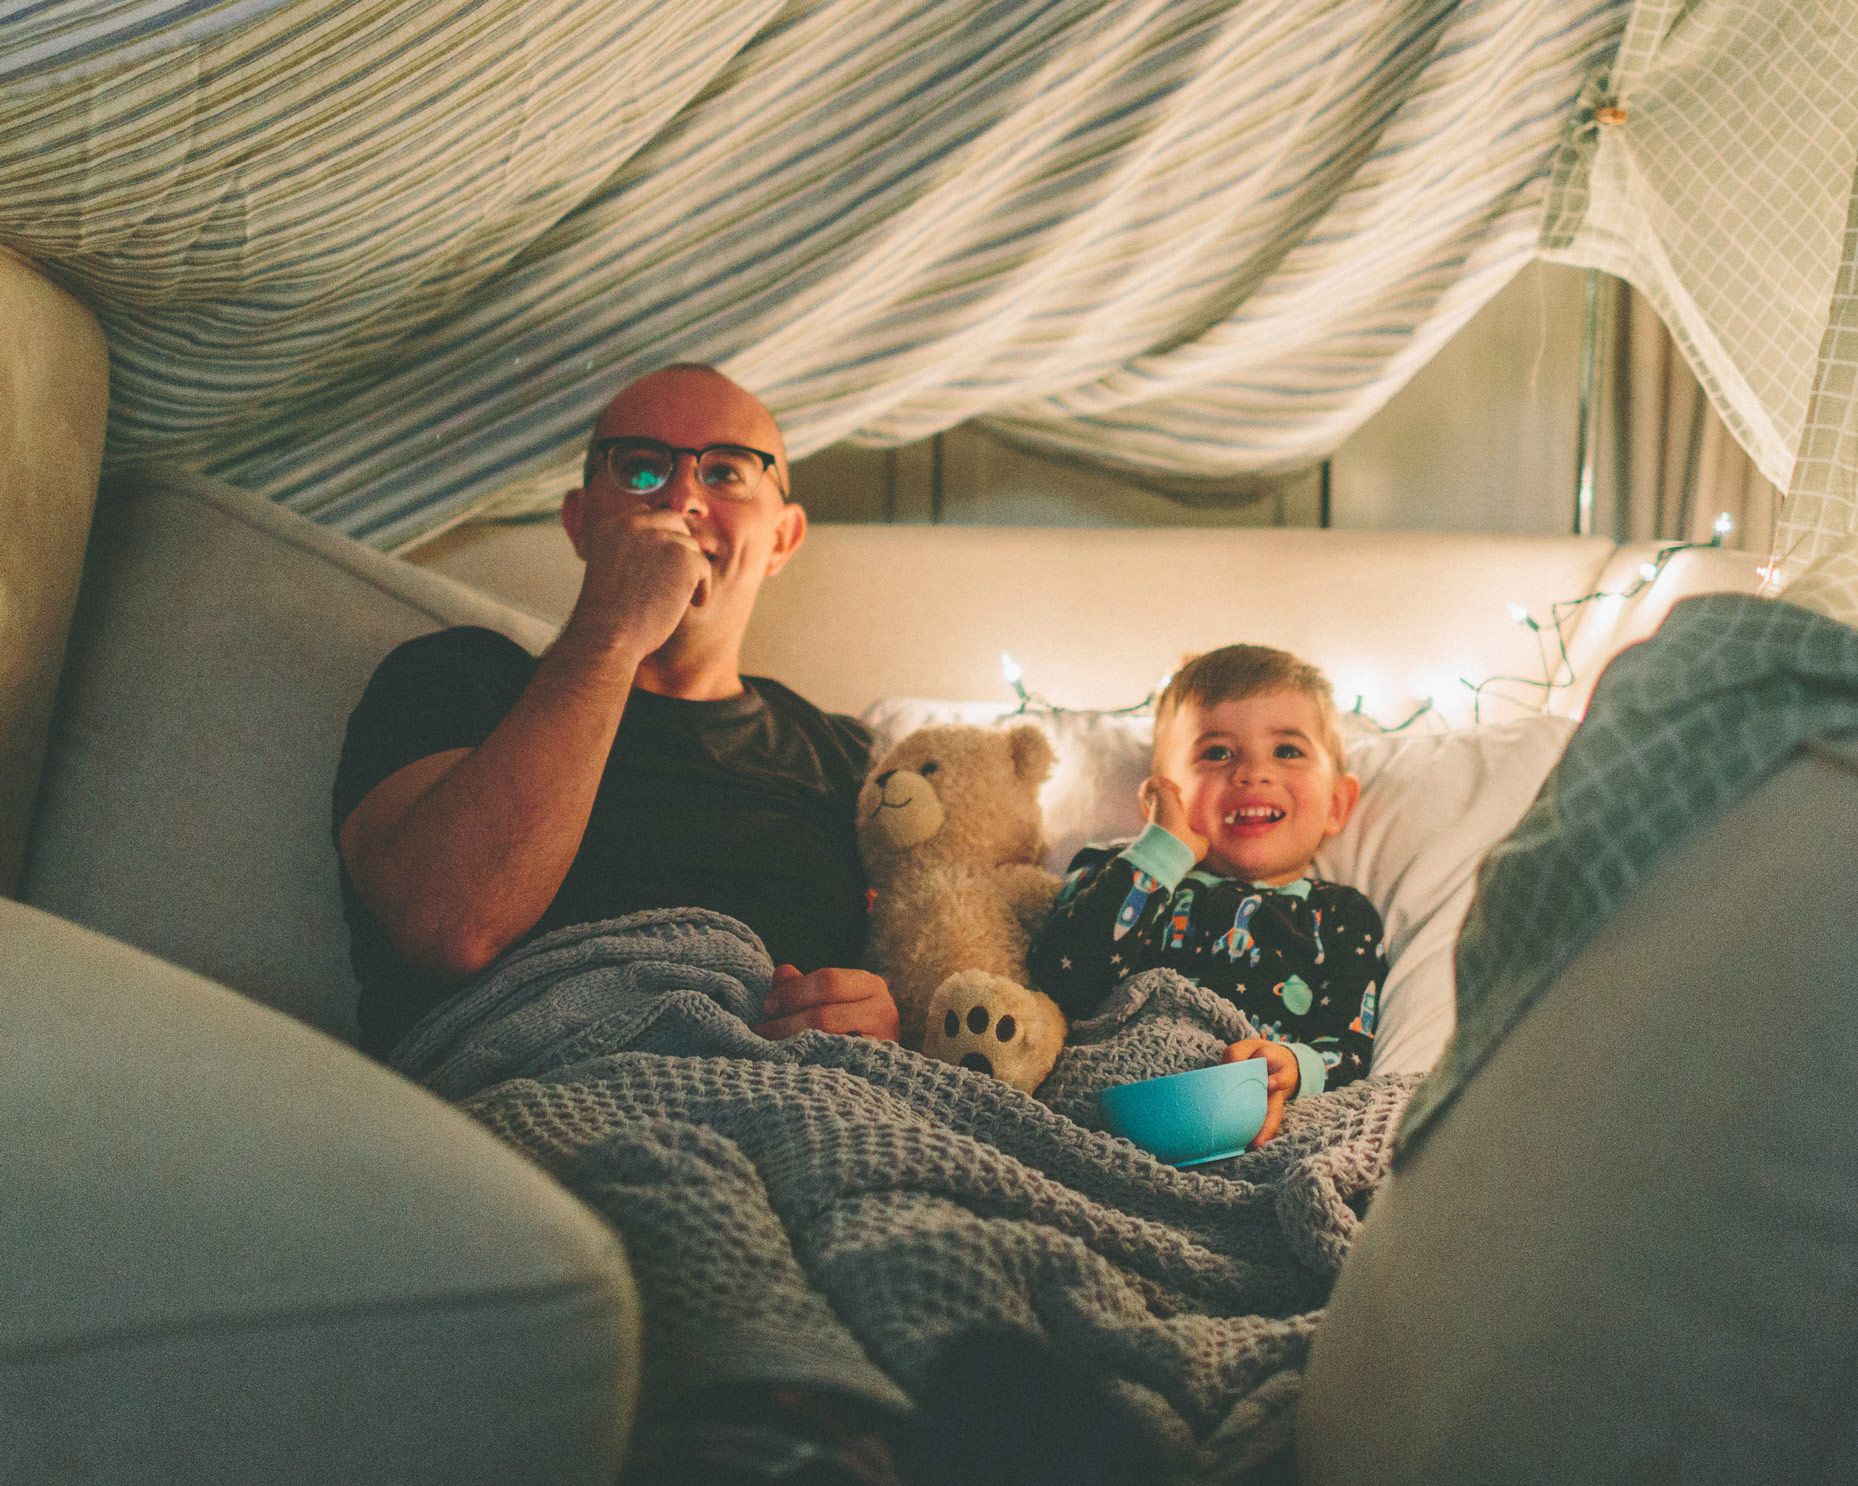 A little boy and his dad watching TV from their pillow fort